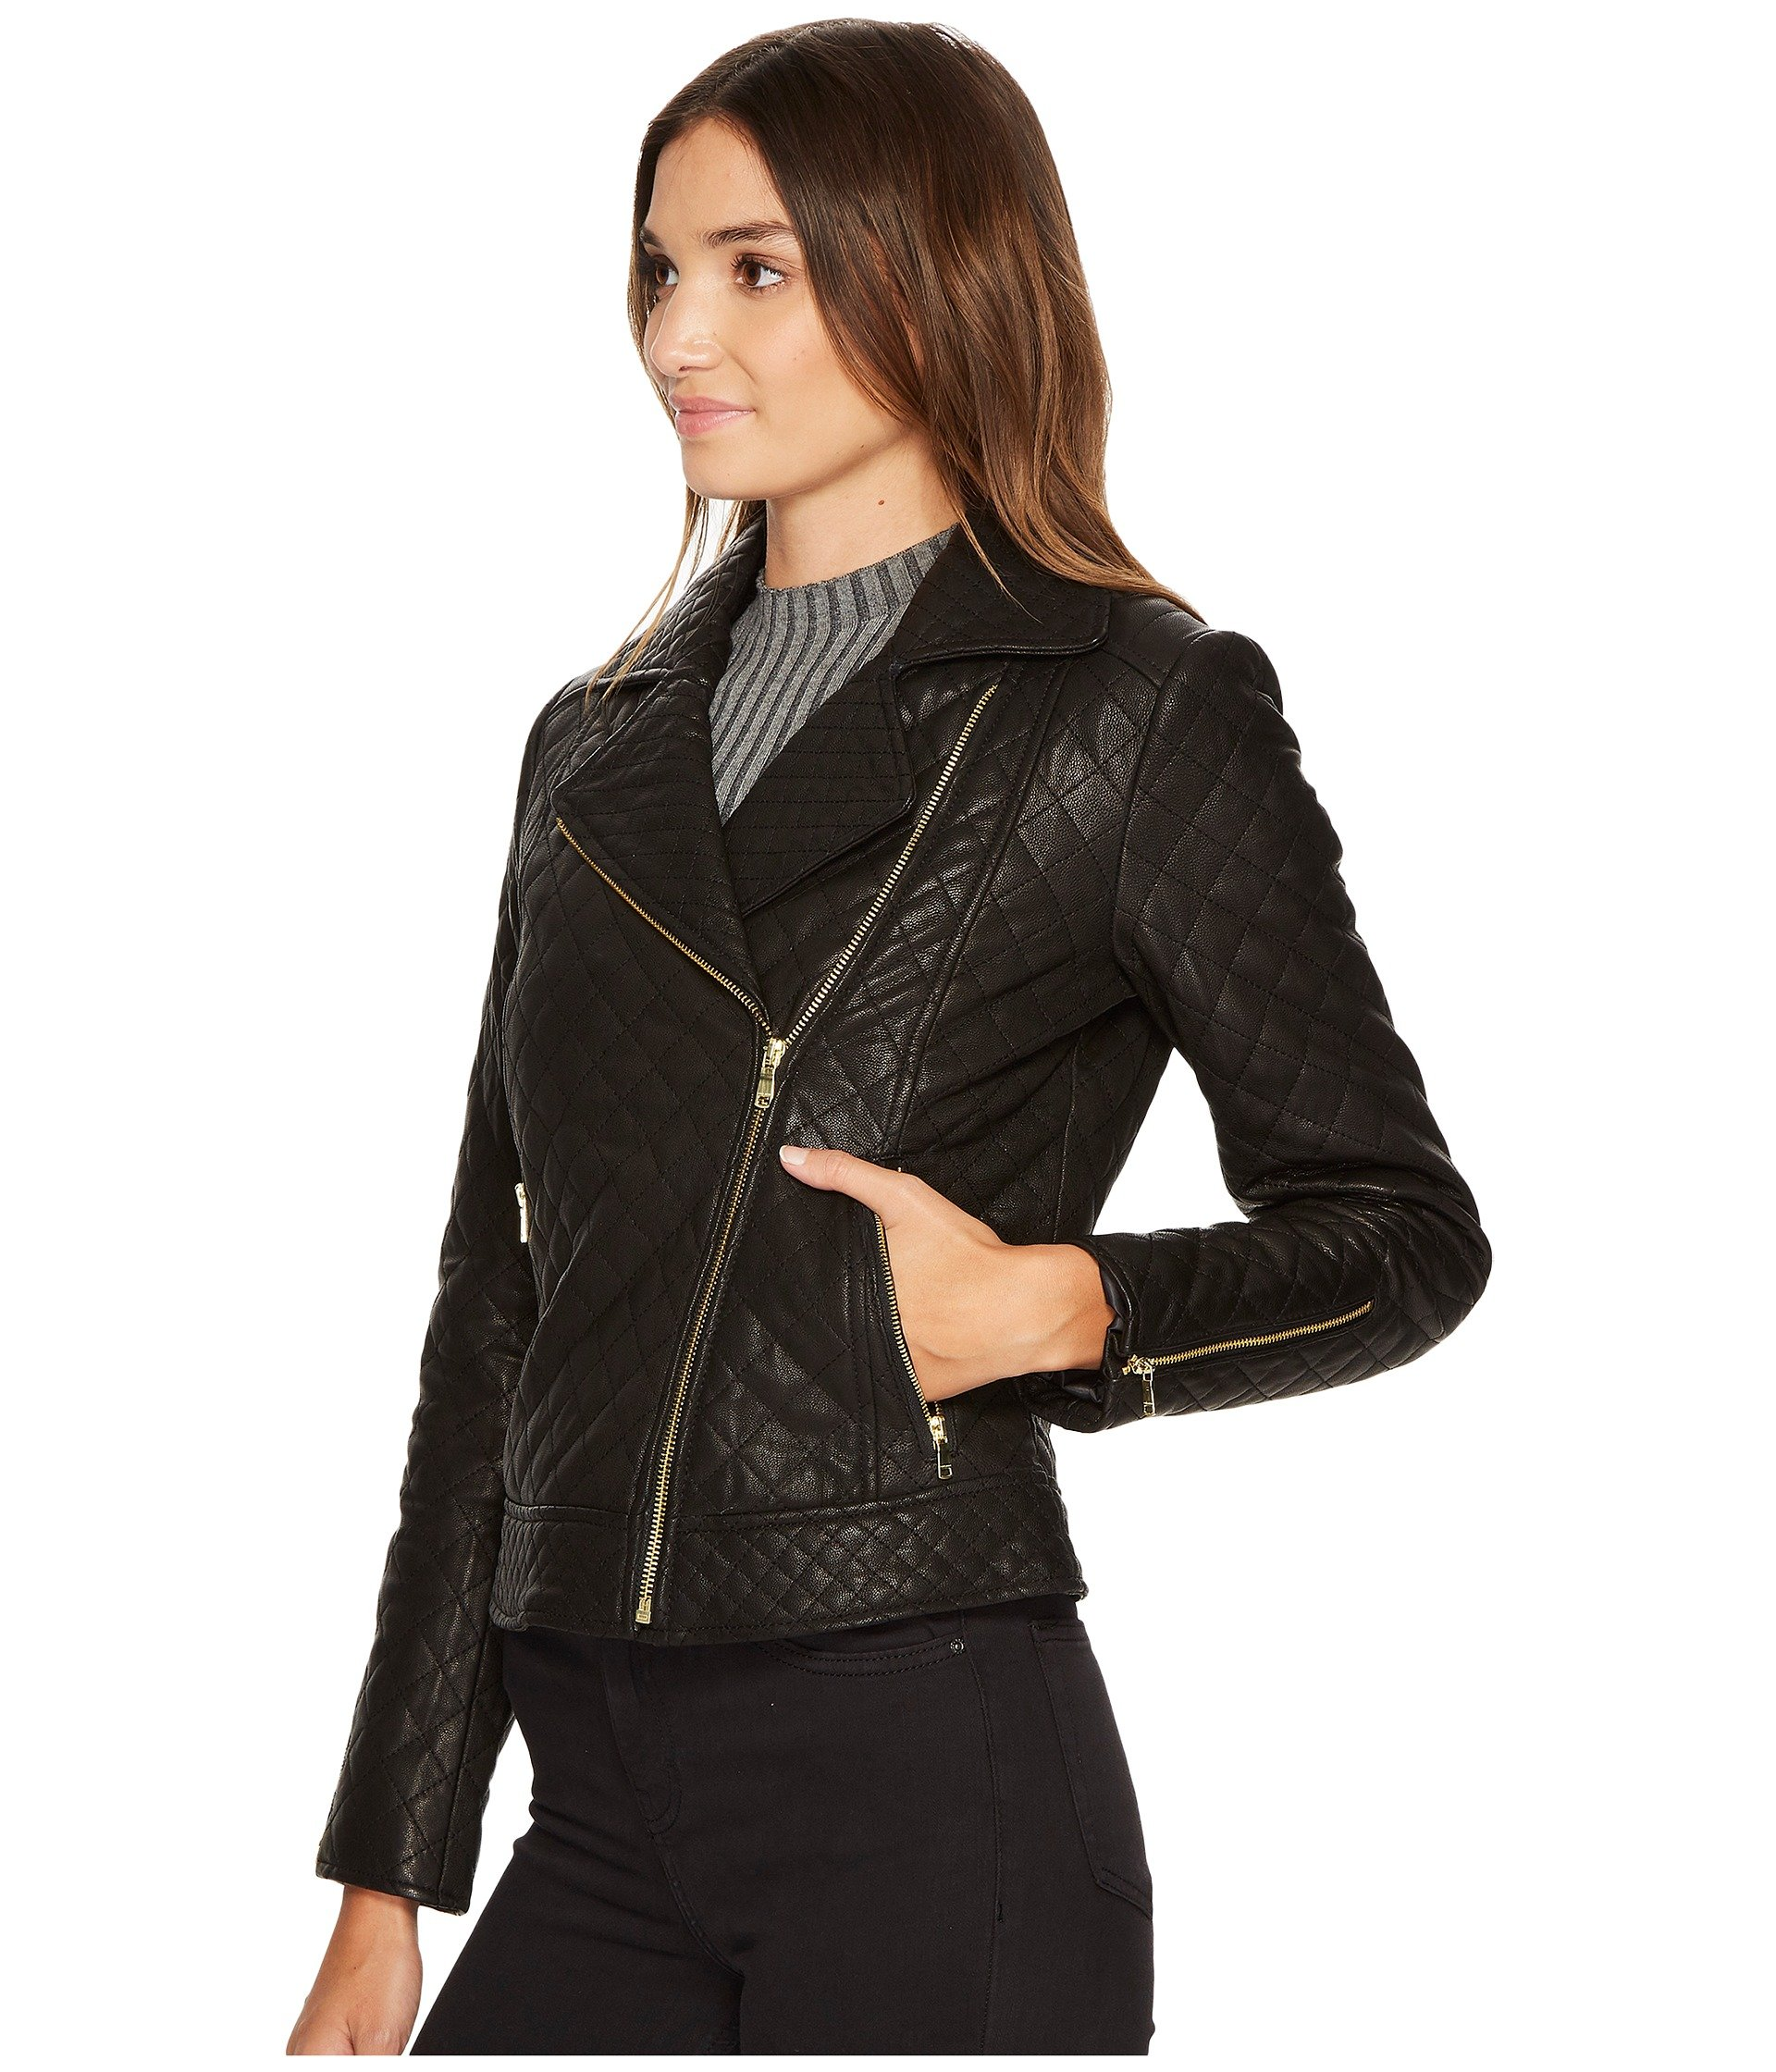 Cole Haan Diamond Quilted Moto w/ Exposed Zippers at Zappos.com : cole haan leather jacket diamond quilted - Adamdwight.com